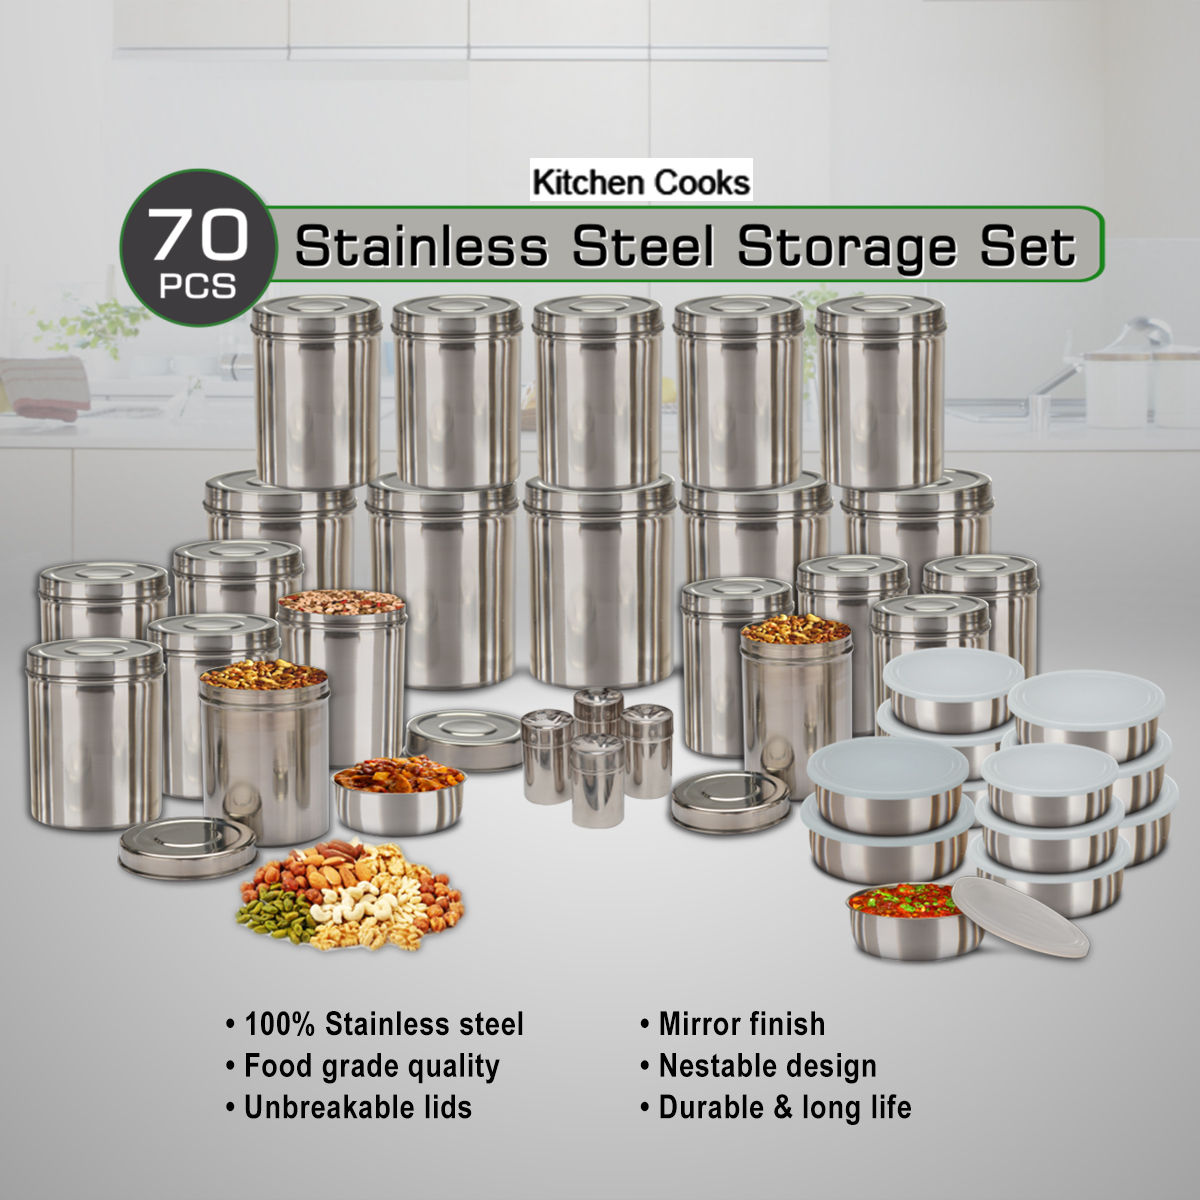 Buy Kitchen Cooks 70 Pcs Stainless Steel Storage Set Online At Best